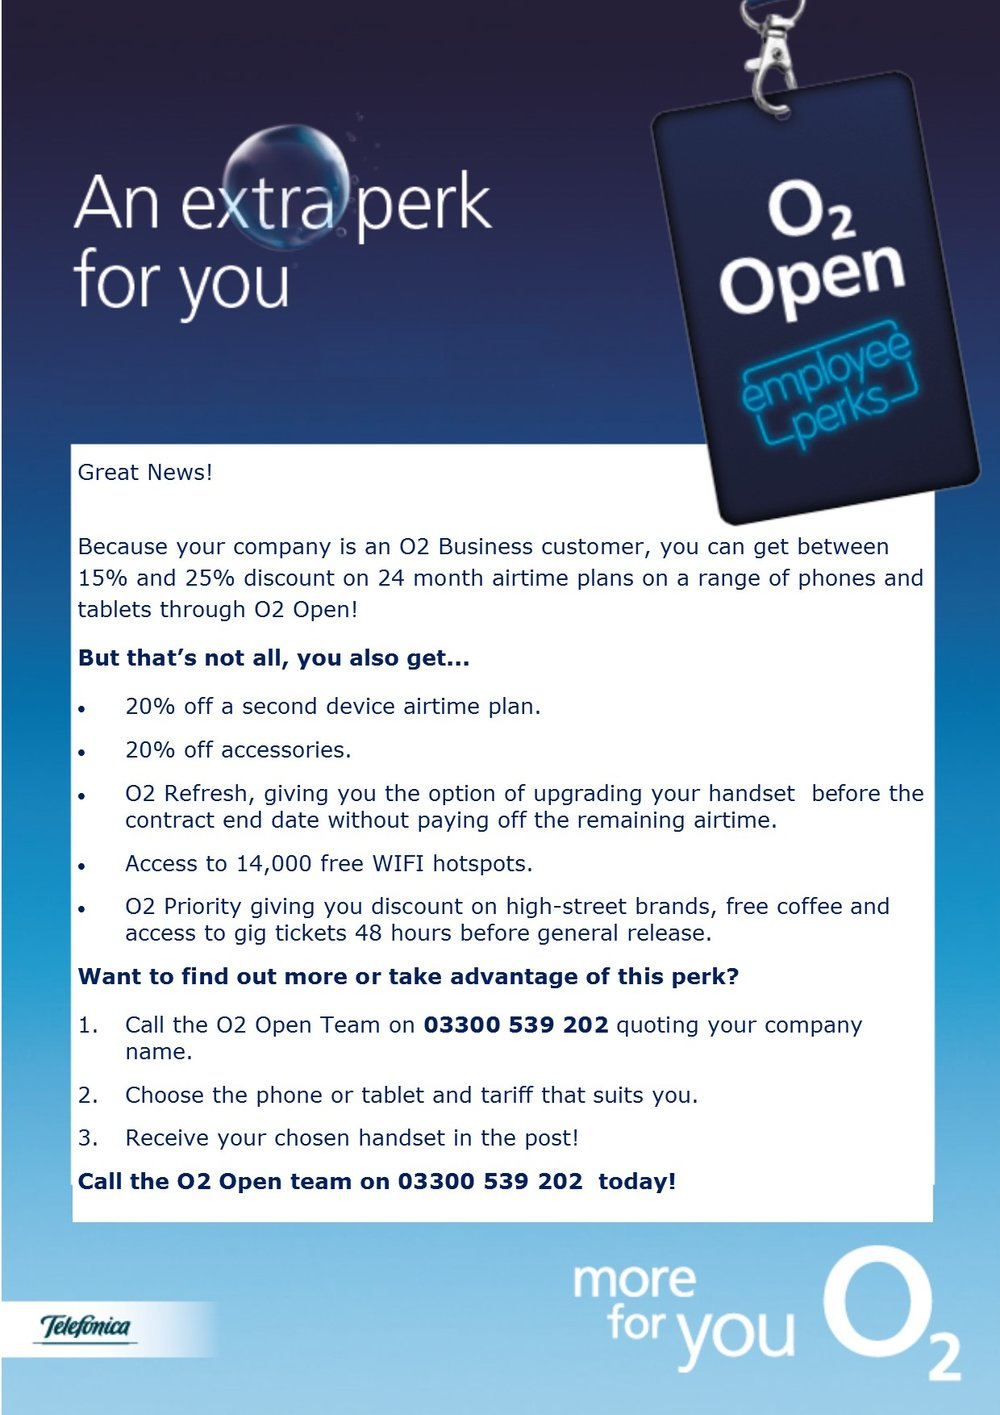 O2 Open Email.jpg